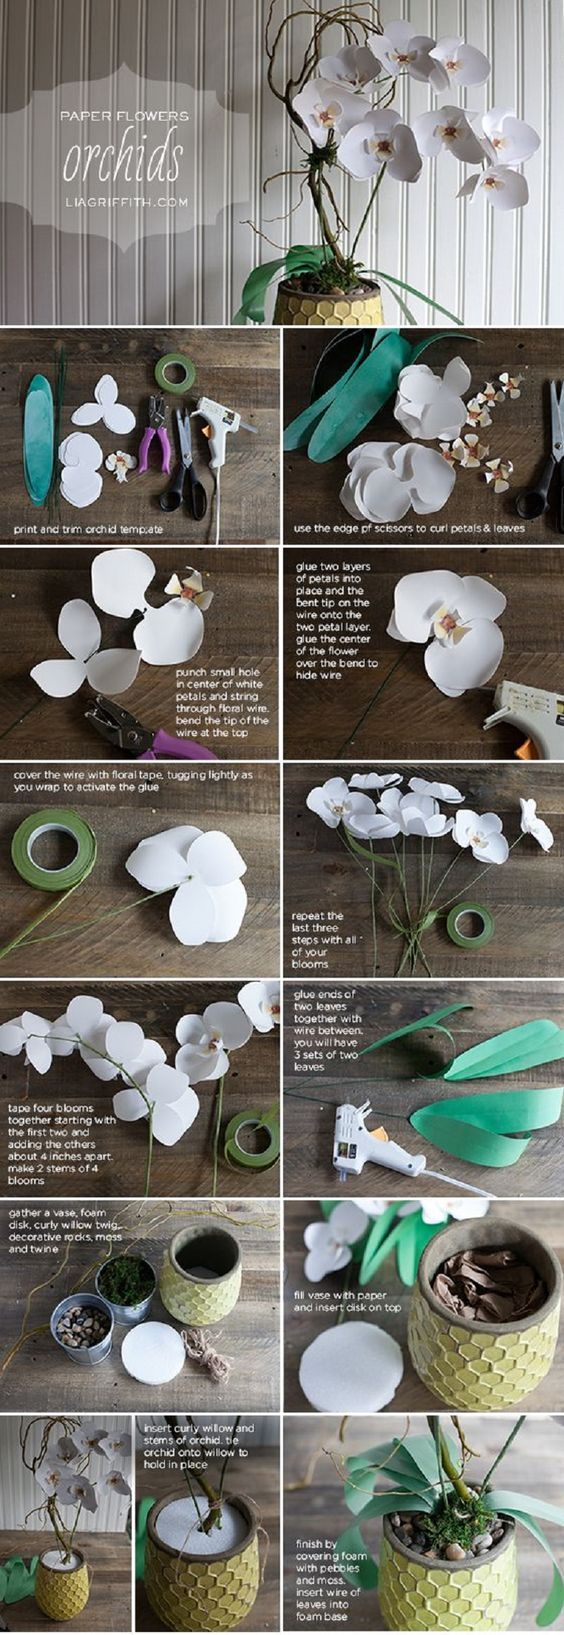 15 Most PINteresting DIY Paper Decorations | GleamItUp: